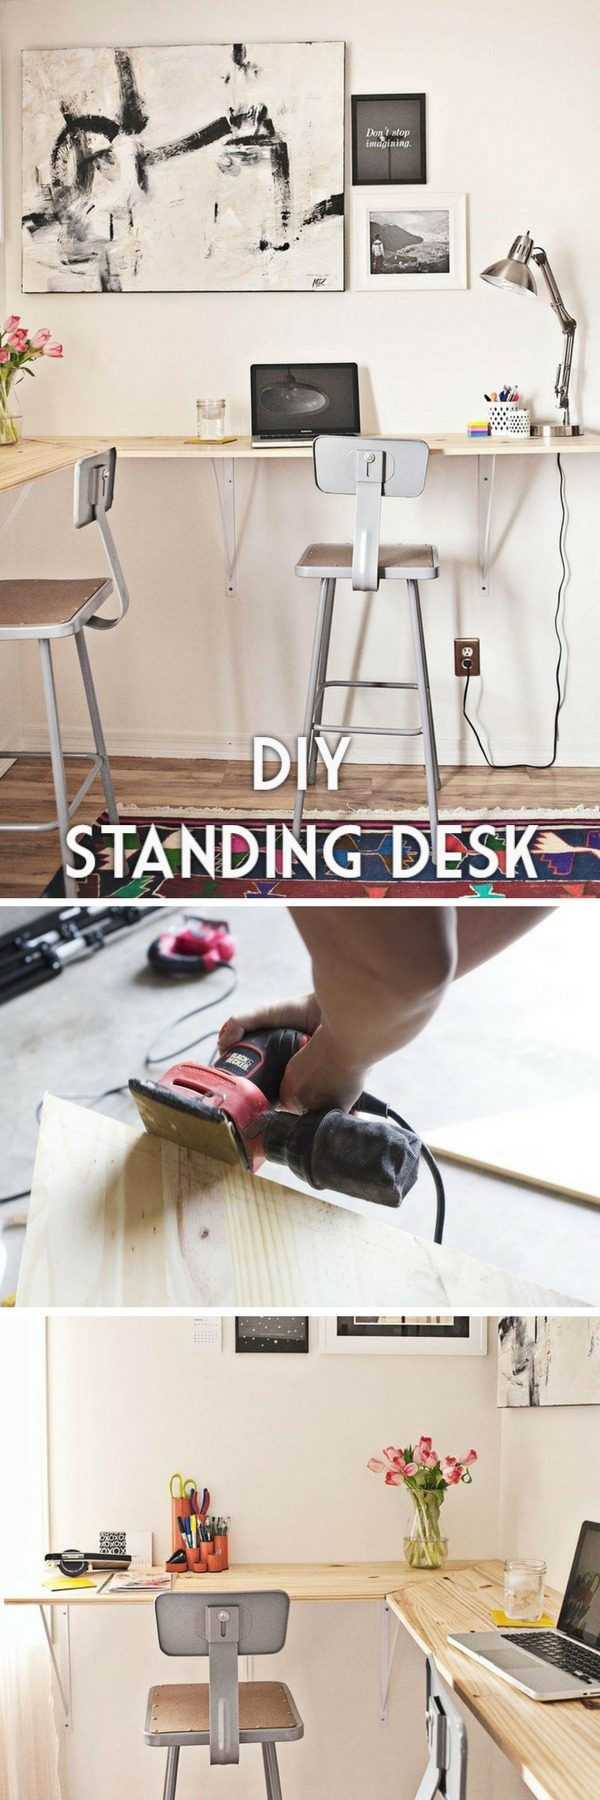 Check out the tutorial how to build a DIY standing desk